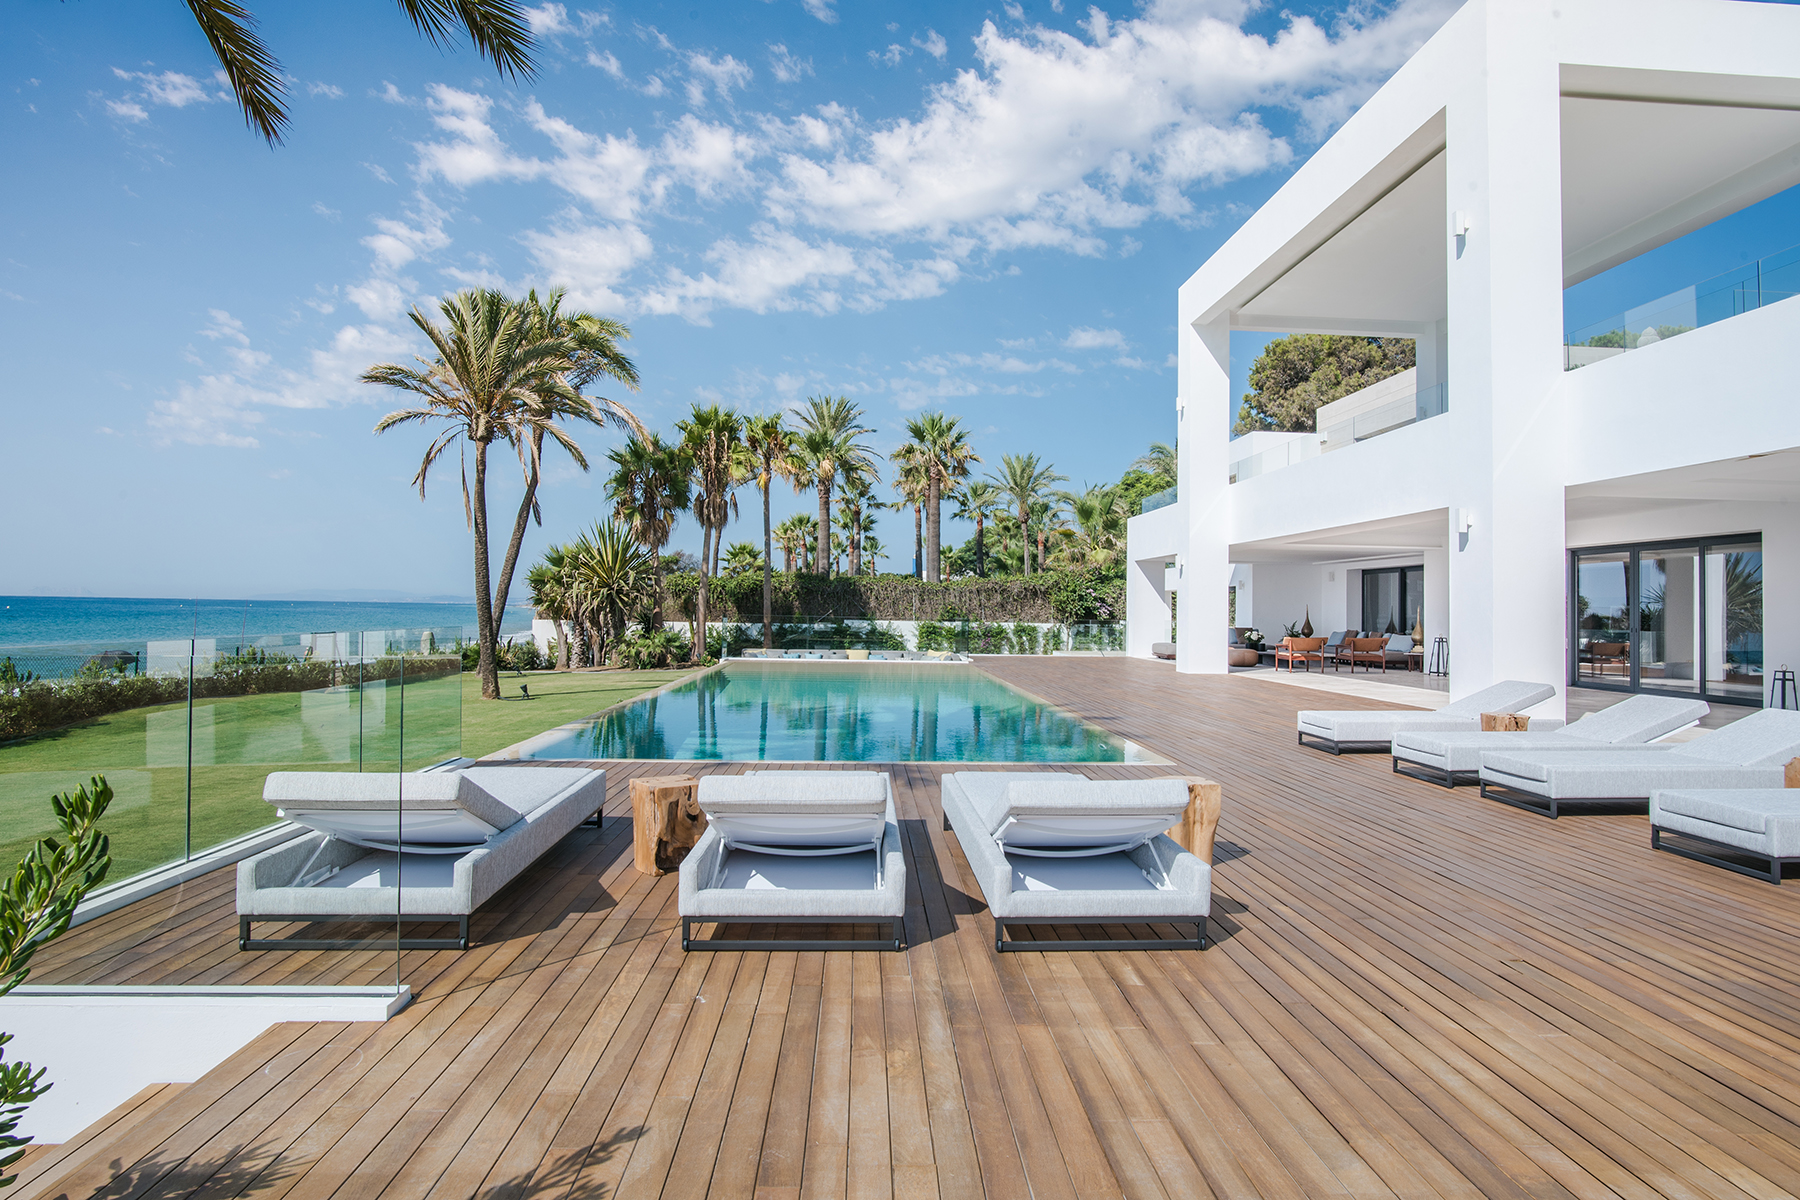 Tek Ailelik Ev için Satış at A truly jewel of villa at beachfront New Golden Mile, Estepona, Costa Del Sol, 29680 Ispanya